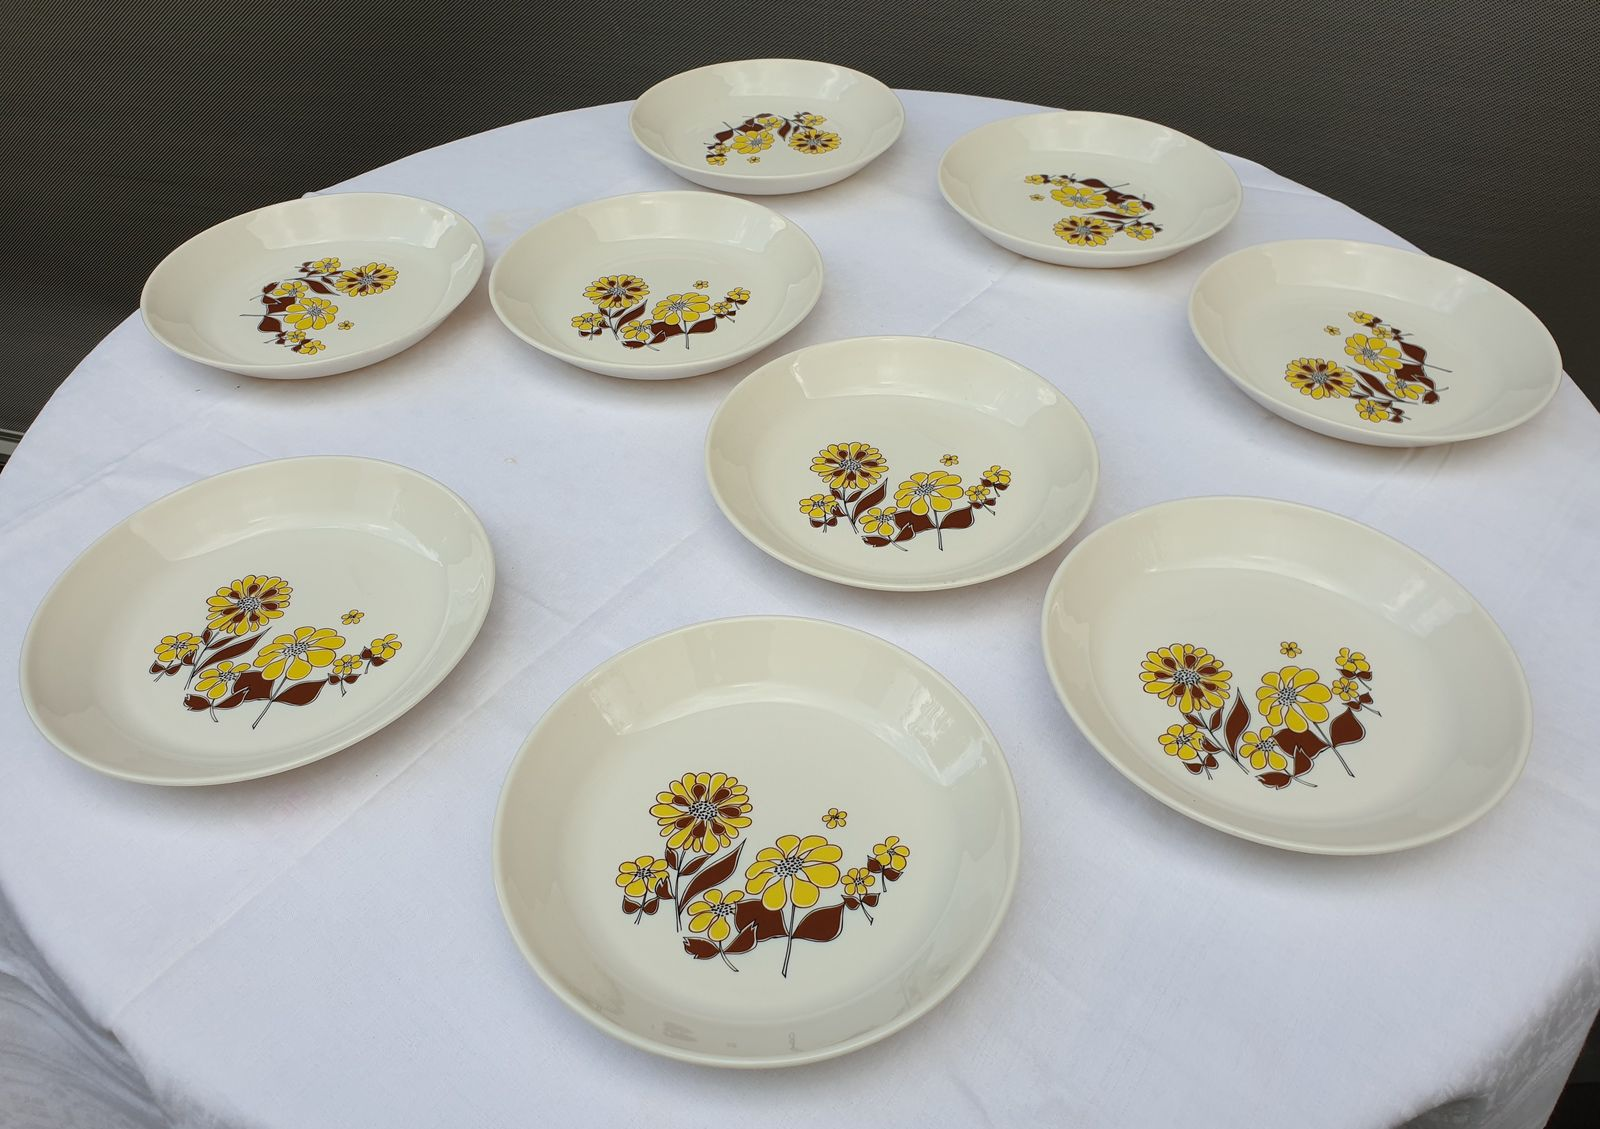 SET 9 ASSIETTES CREUSES SOVIREL 1970